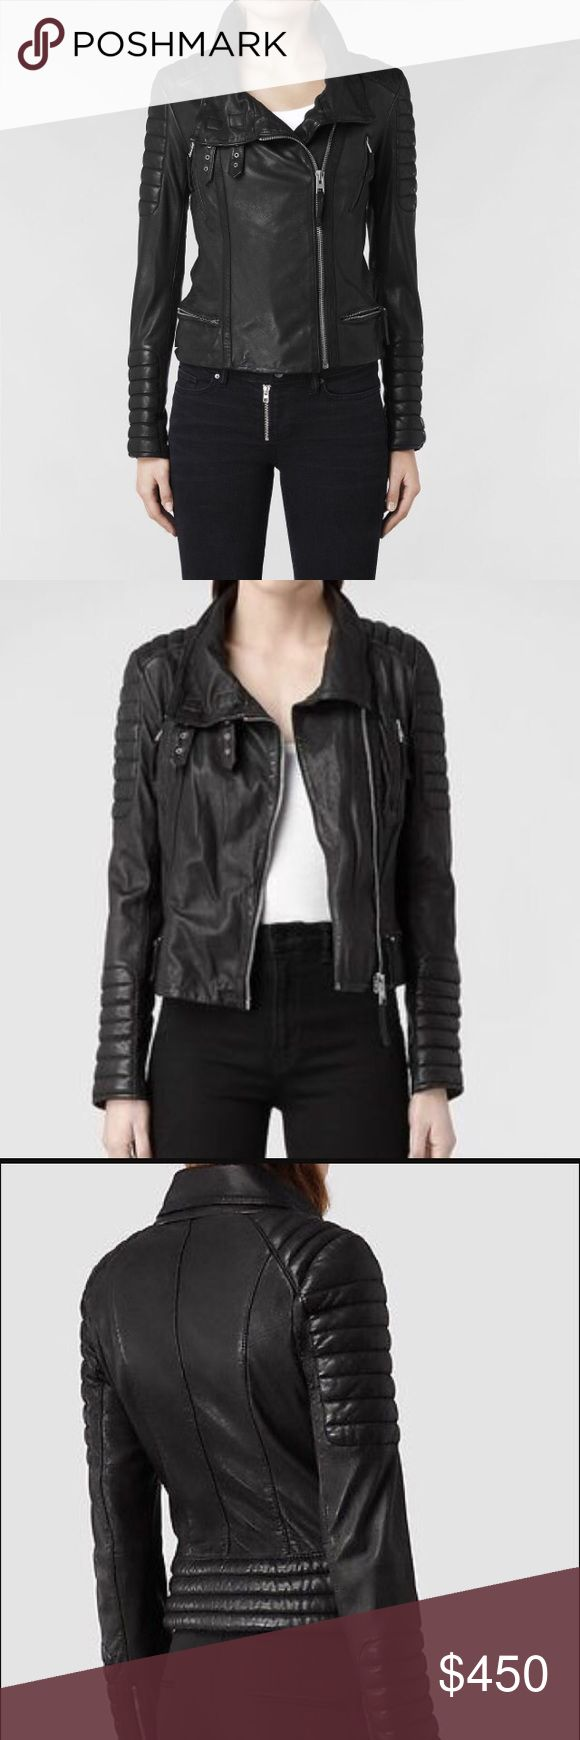 Allsaints Steine Biker size US8 Allsaints Steine Biker size US 8. Only worn twice, this jacket is in beautiful condition. No scratches or scuffs. This jacket has been seen on tons of celebrities and sold out quickly! All reasonable offers will be considered, please, no low ball offers or trades😉                            SHIPS SAME DAY!! Allsaints Jackets & Coats